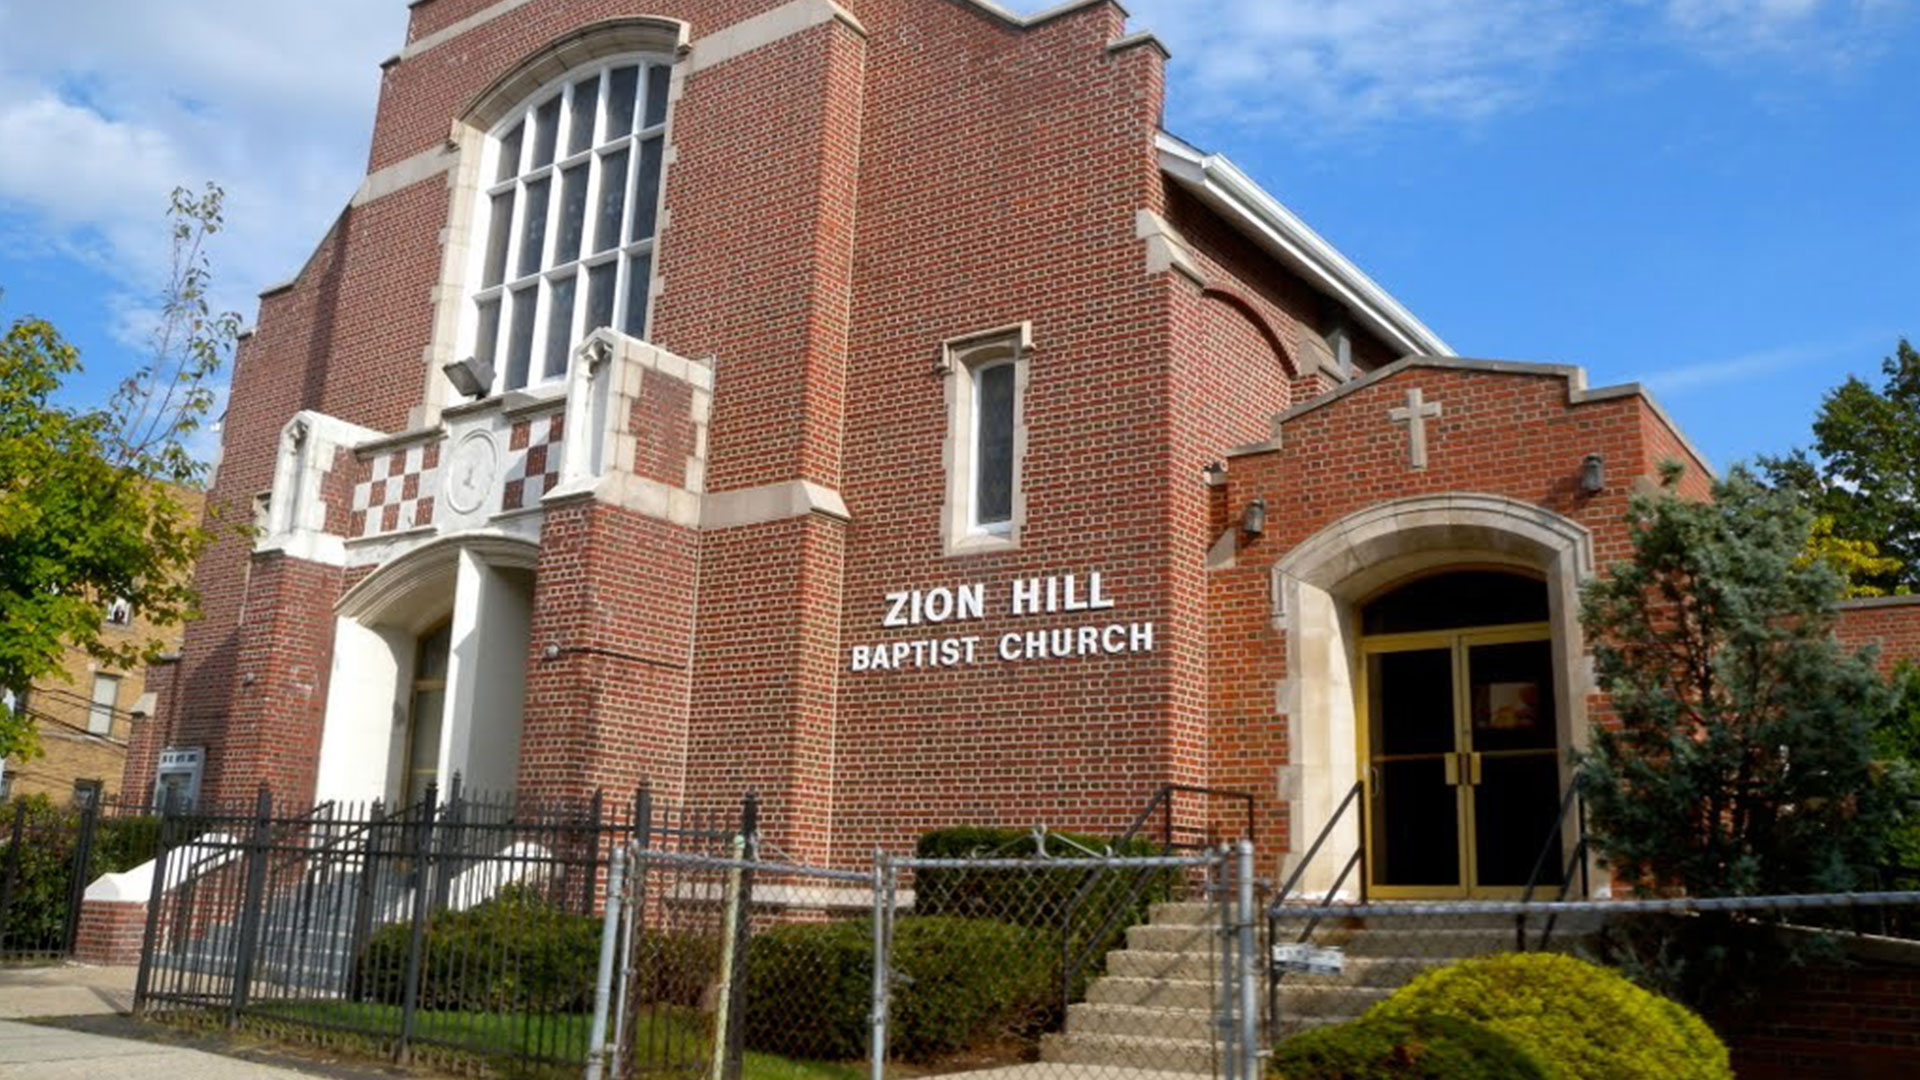 Zion Hill Baptist Church: Church, Church Rental and Bible Studies in Hillside, Union and West Orange